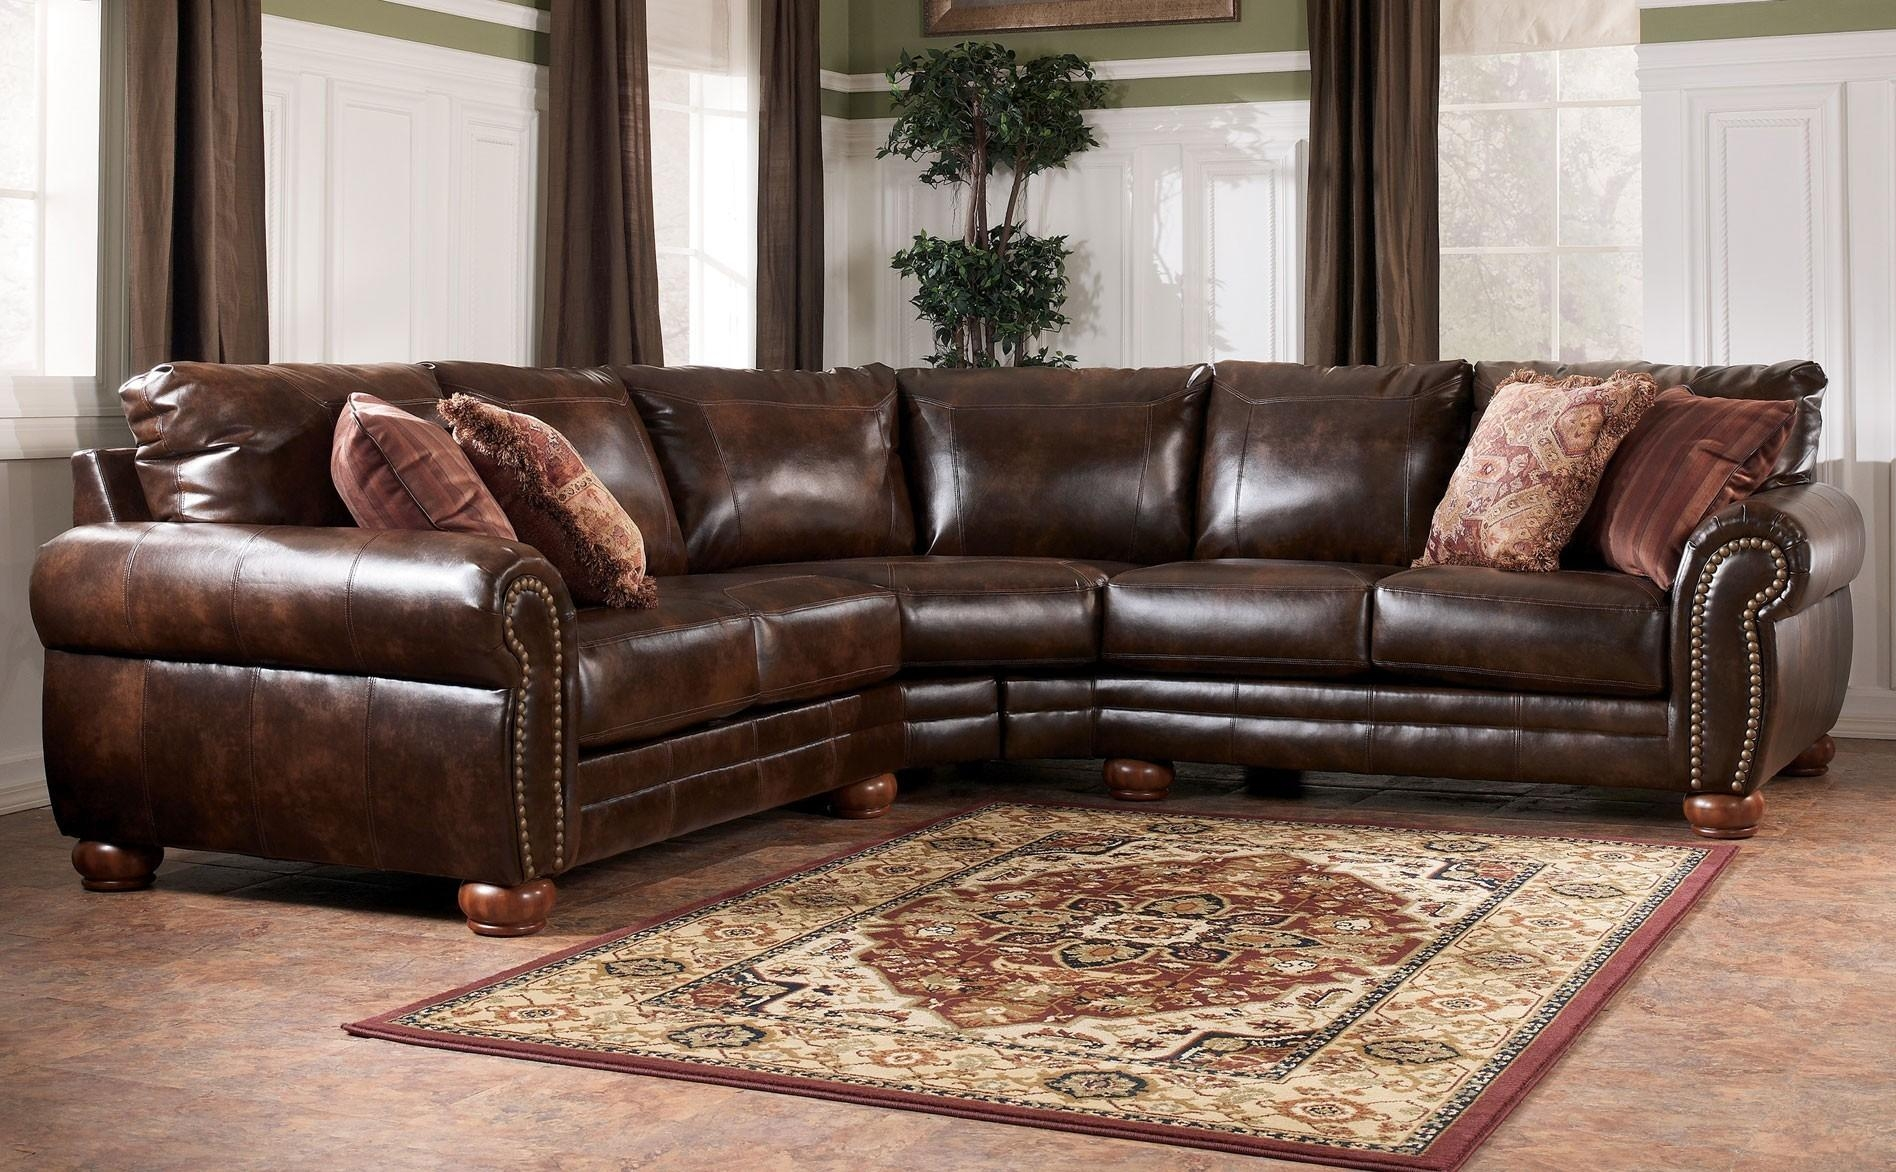 Furniture: Beige Costco Sectional With Ikea Side Table And Shag Inside Costco Leather Sectional Sofas (View 13 of 20)